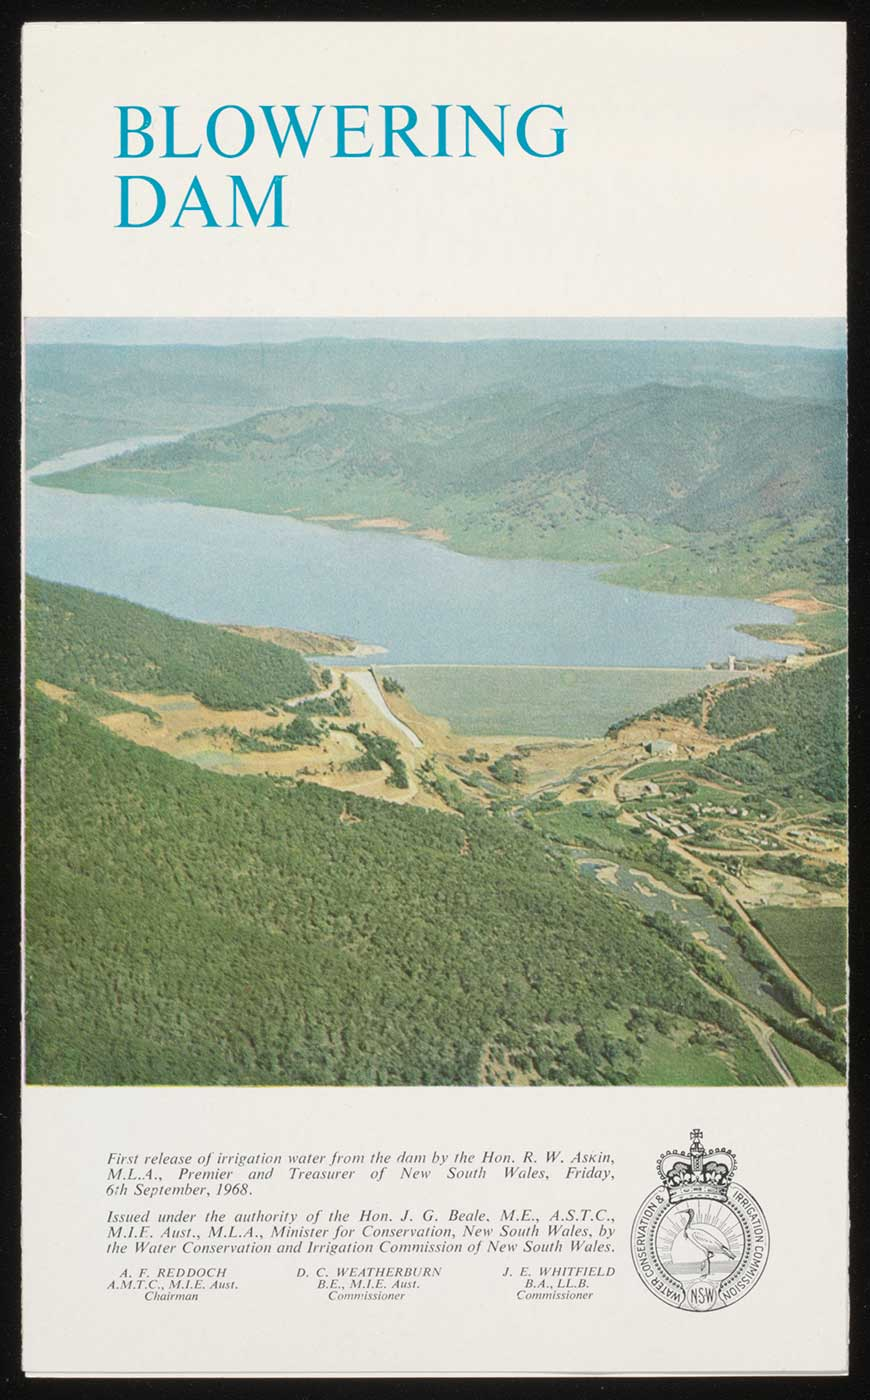 Cover of a booklet titled 'Blowering Dam' showing an aerial photo of a large dam and surrounding landscape. Text and a small crest also feature at the bottom. - click to view larger image